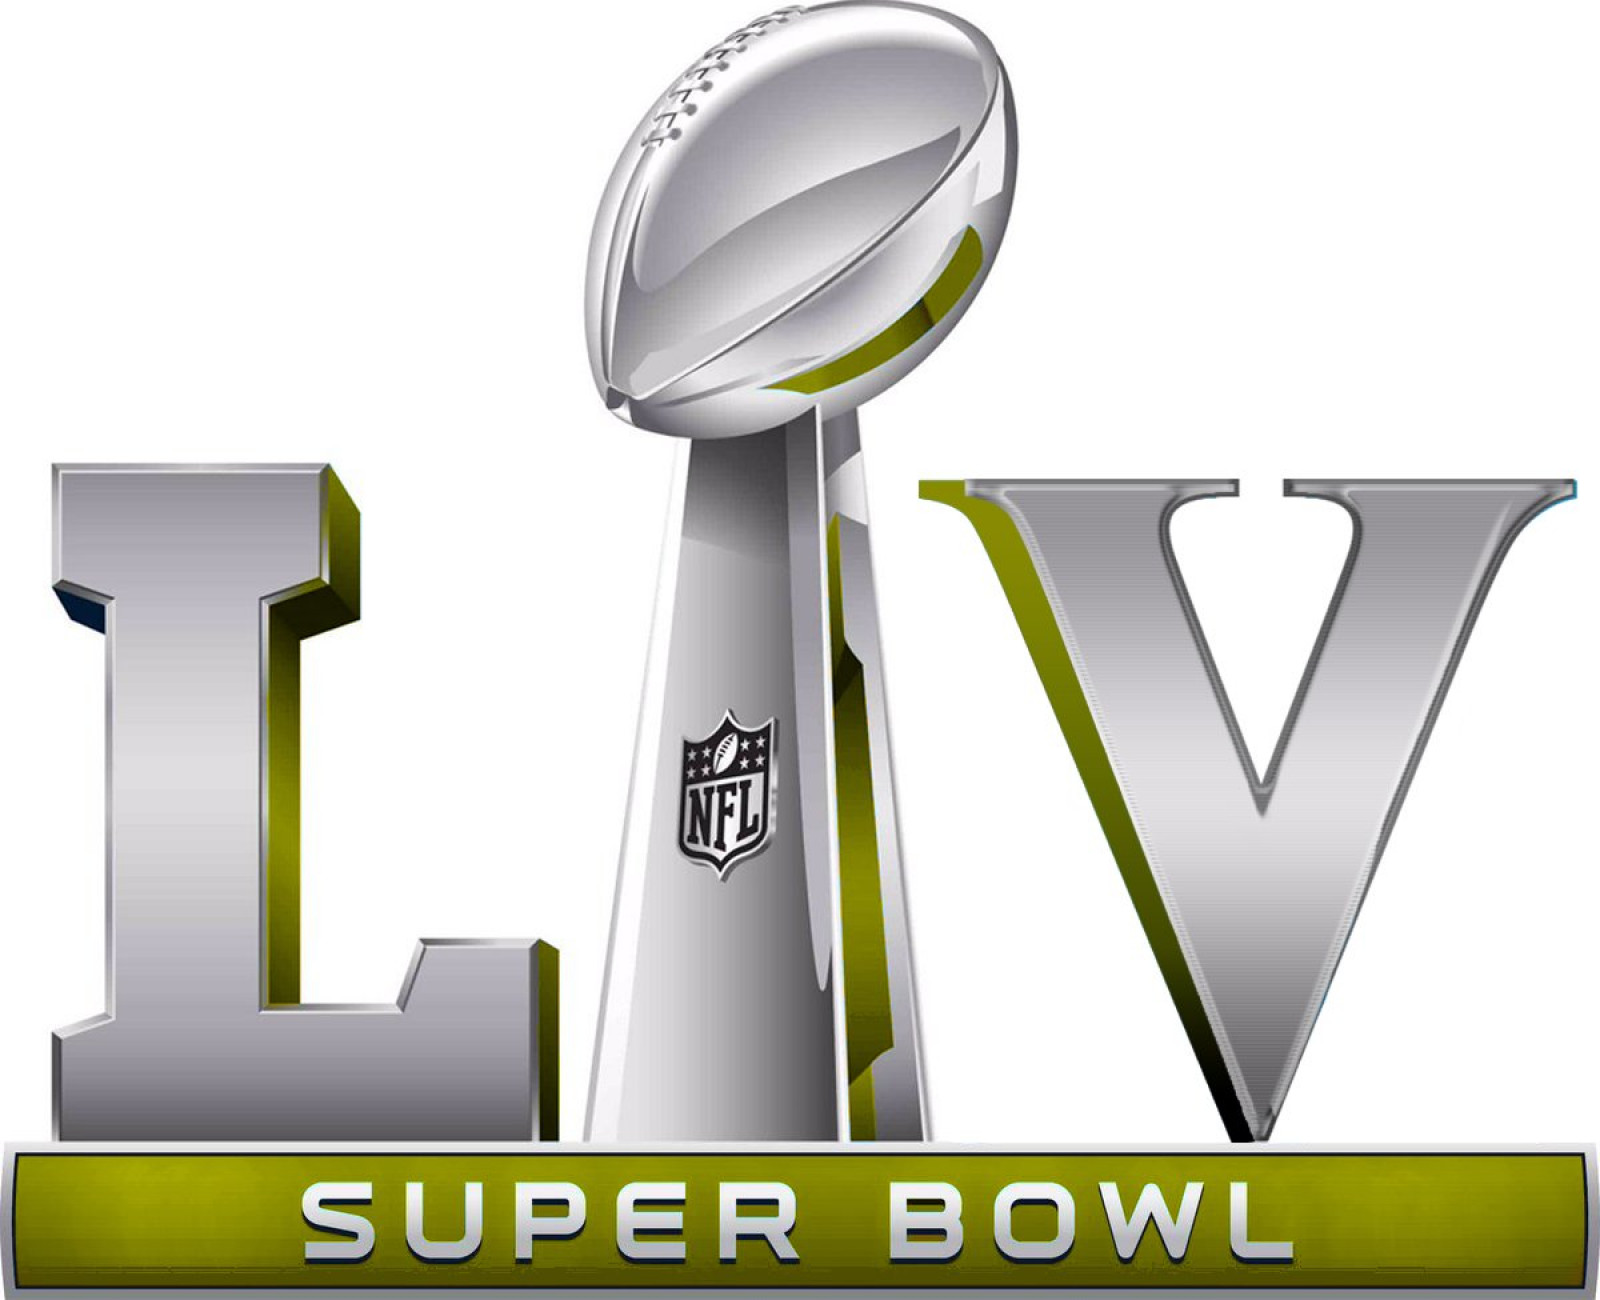 Cover image for TV advertising vs. lockdown hiatus: Welcome to the Super Bowl LV